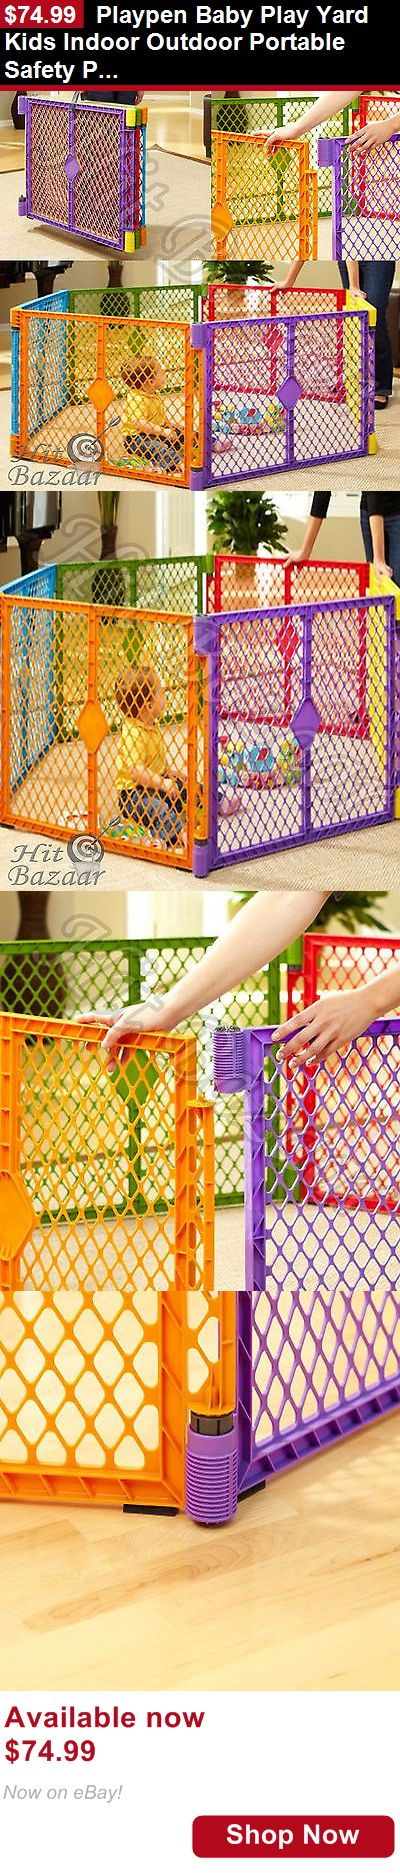 Baby Play pens and play yards: Playpen Baby Play Yard Kids Indoor Outdoor Portable Safety Playard Gate Game Pen BUY IT NOW ONLY: $74.99